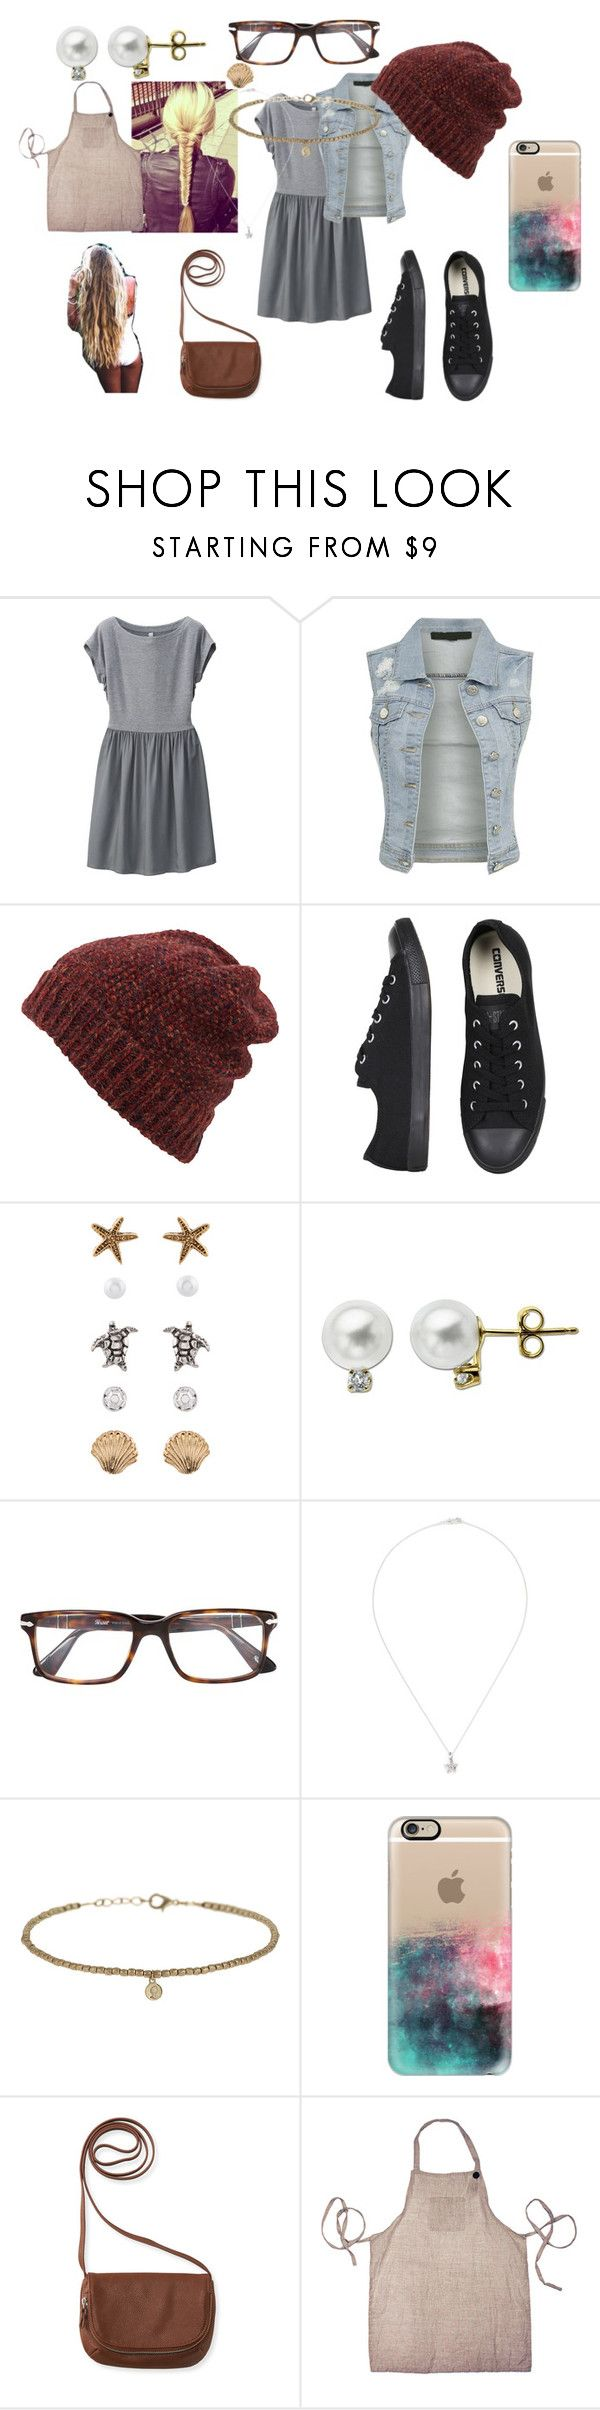 """""""Ava"""" by gilliski ❤ liked on Polyvore featuring Uniqlo, Inverni, Converse, Belle Vie, Accessorize, Lord & Taylor, Persol, Khai Khai, Topshop and Casetify"""